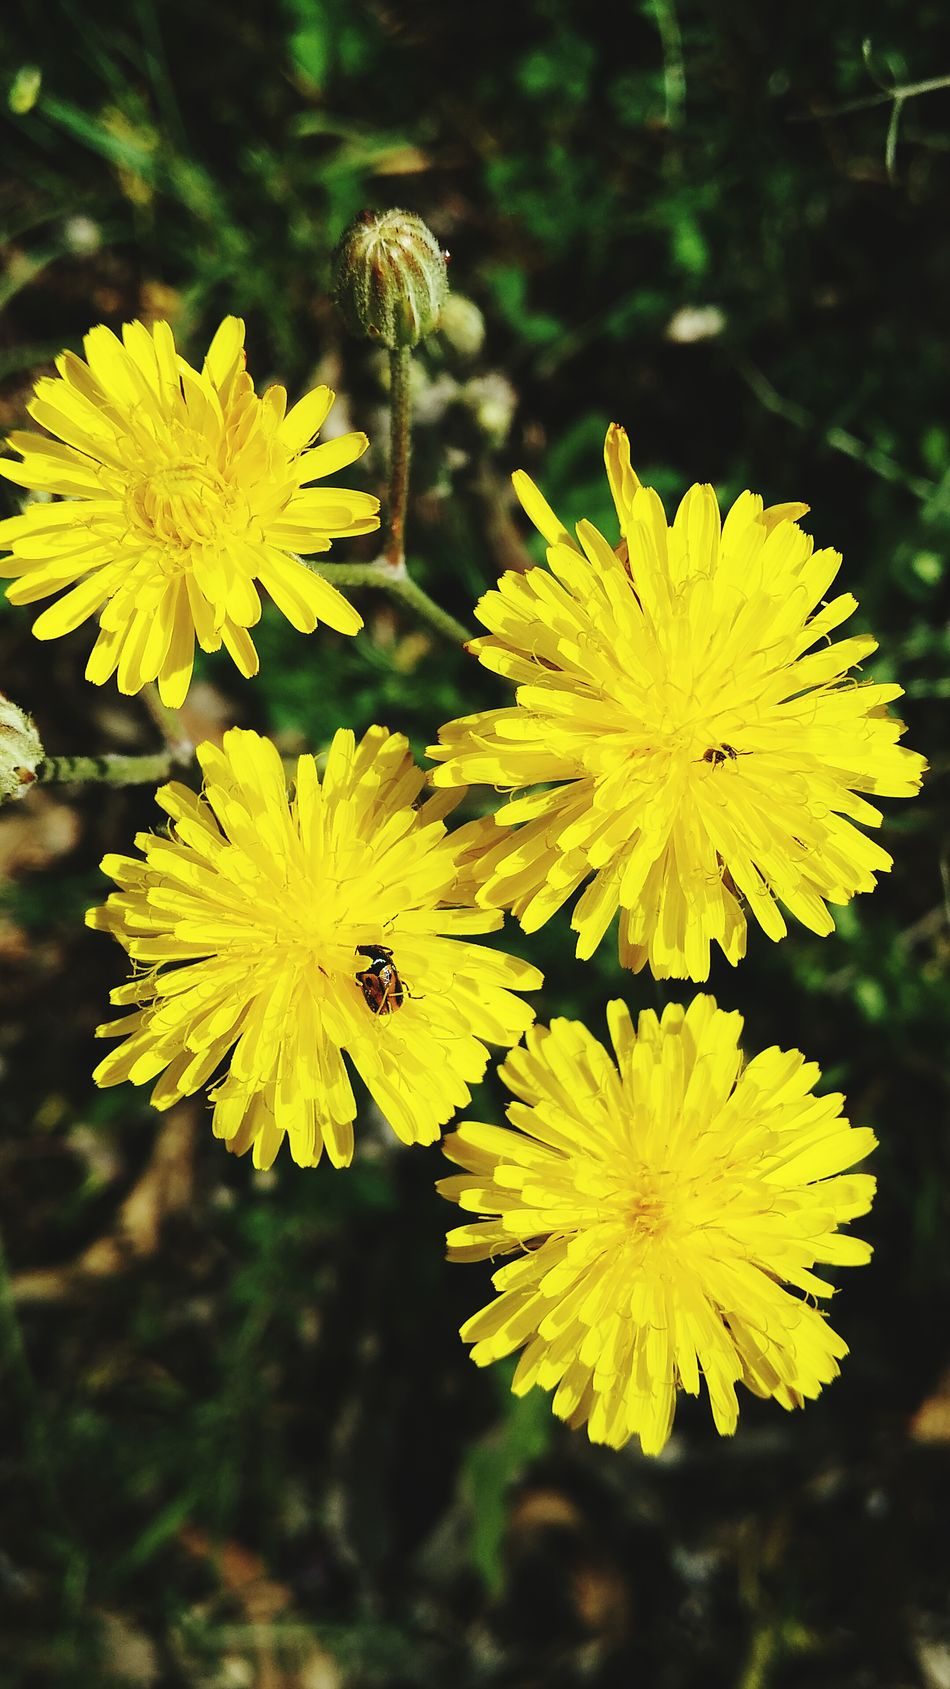 Flower Yellow Fragility Nature Flower Head Beauty In Nature Freshness Growth Petal Plant Outdoors Day Focus On Foreground No People Summer Leaf Close-up Cáceres (Spain) Flores Naturaleza Primavera Beauty In Nature Plant Nature Pollen